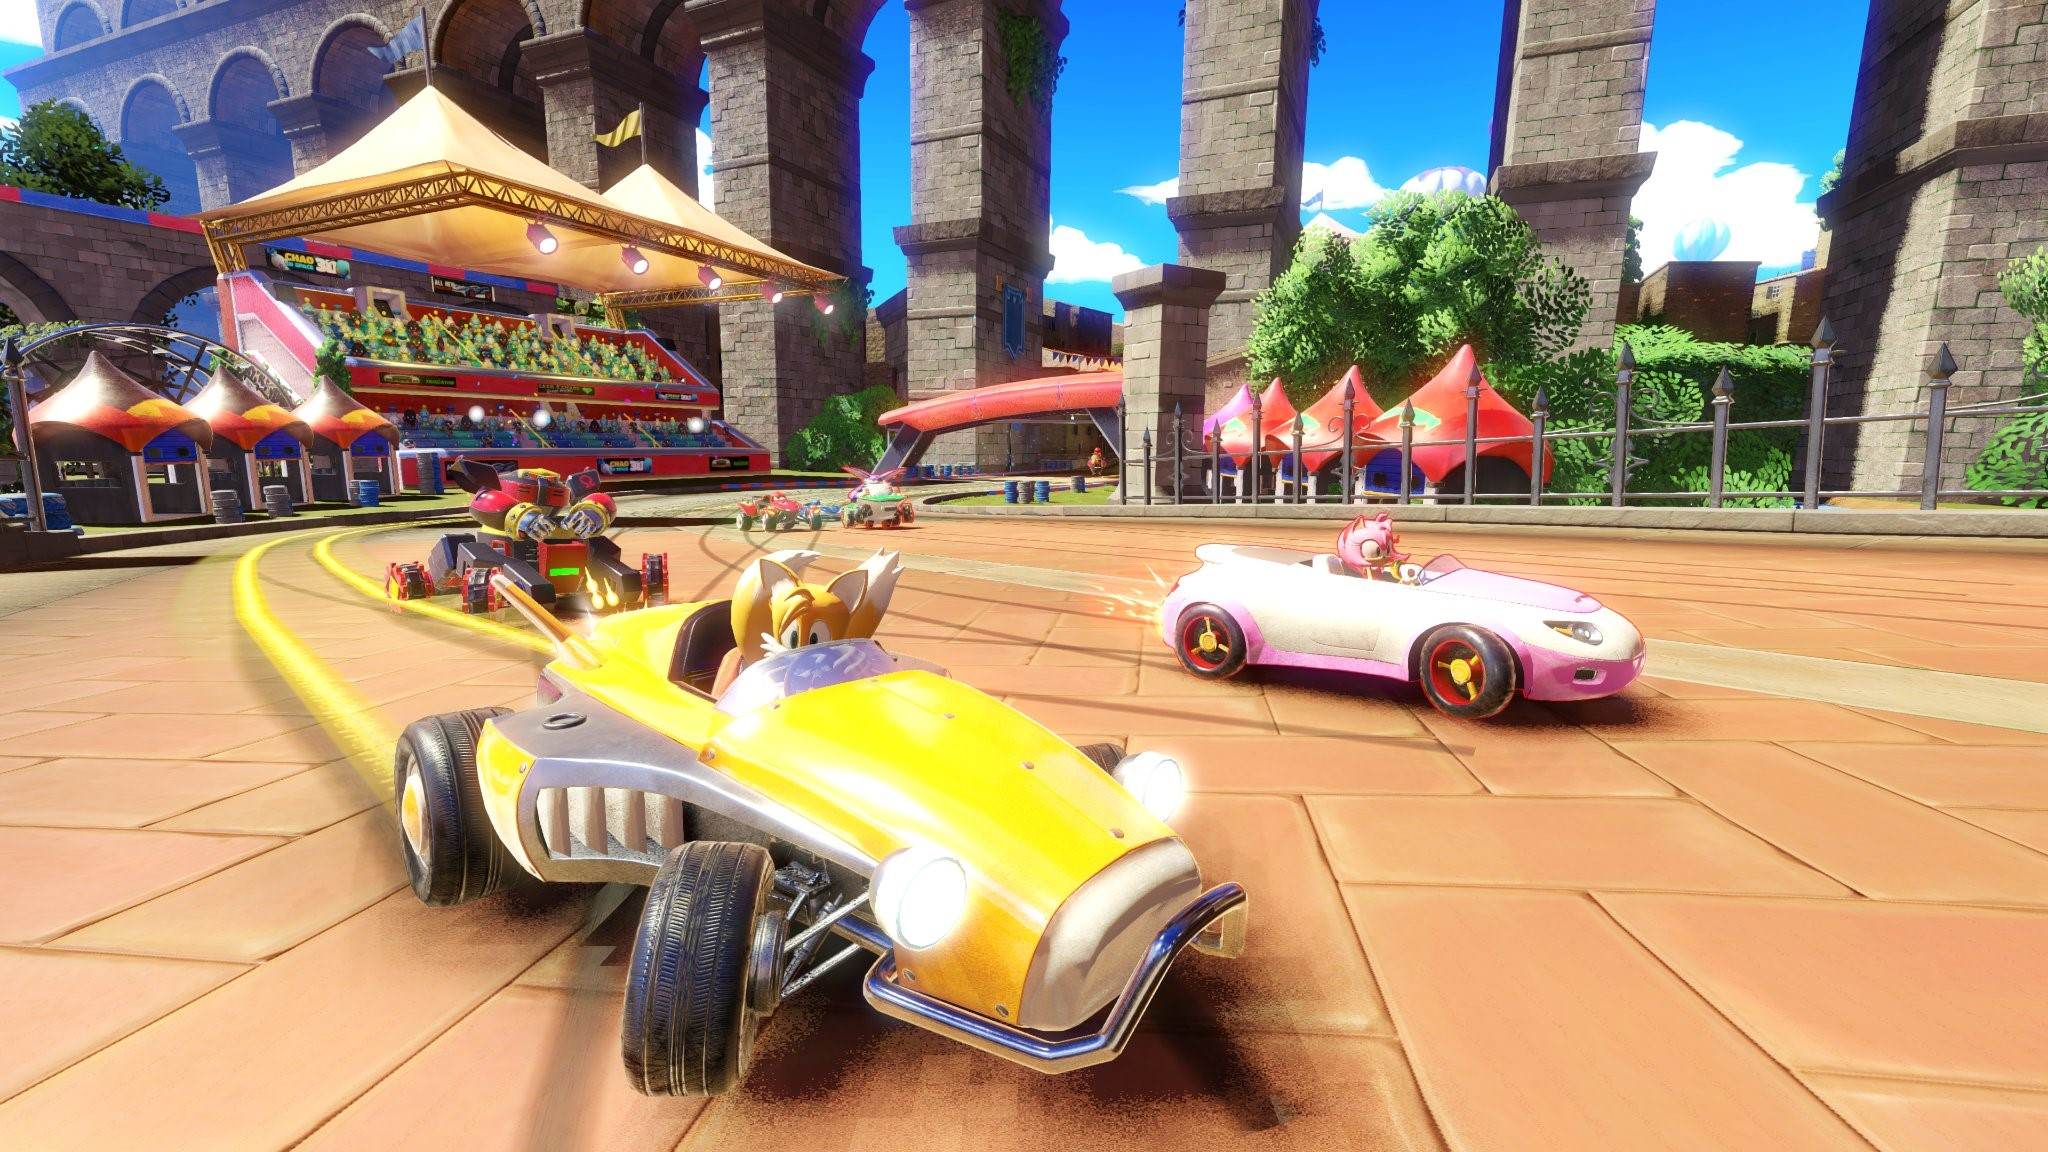 Team Sonic Racing Shows Off New Market Street Track Nintendo - Market street car show